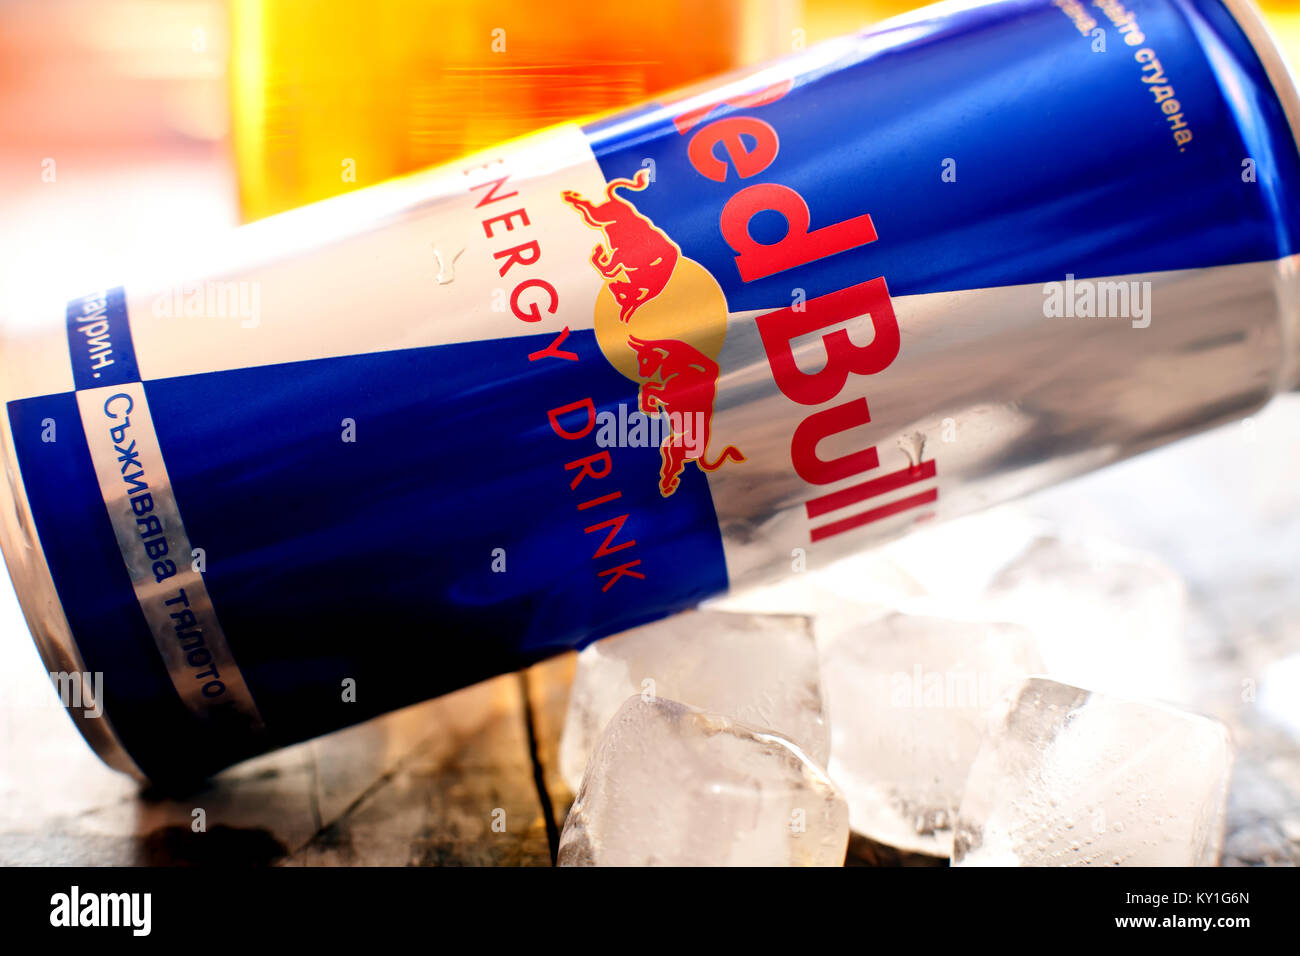 Red Bull Kühlschrank Dose Maße : Red bull drink in can stockfotos red bull drink in can bilder